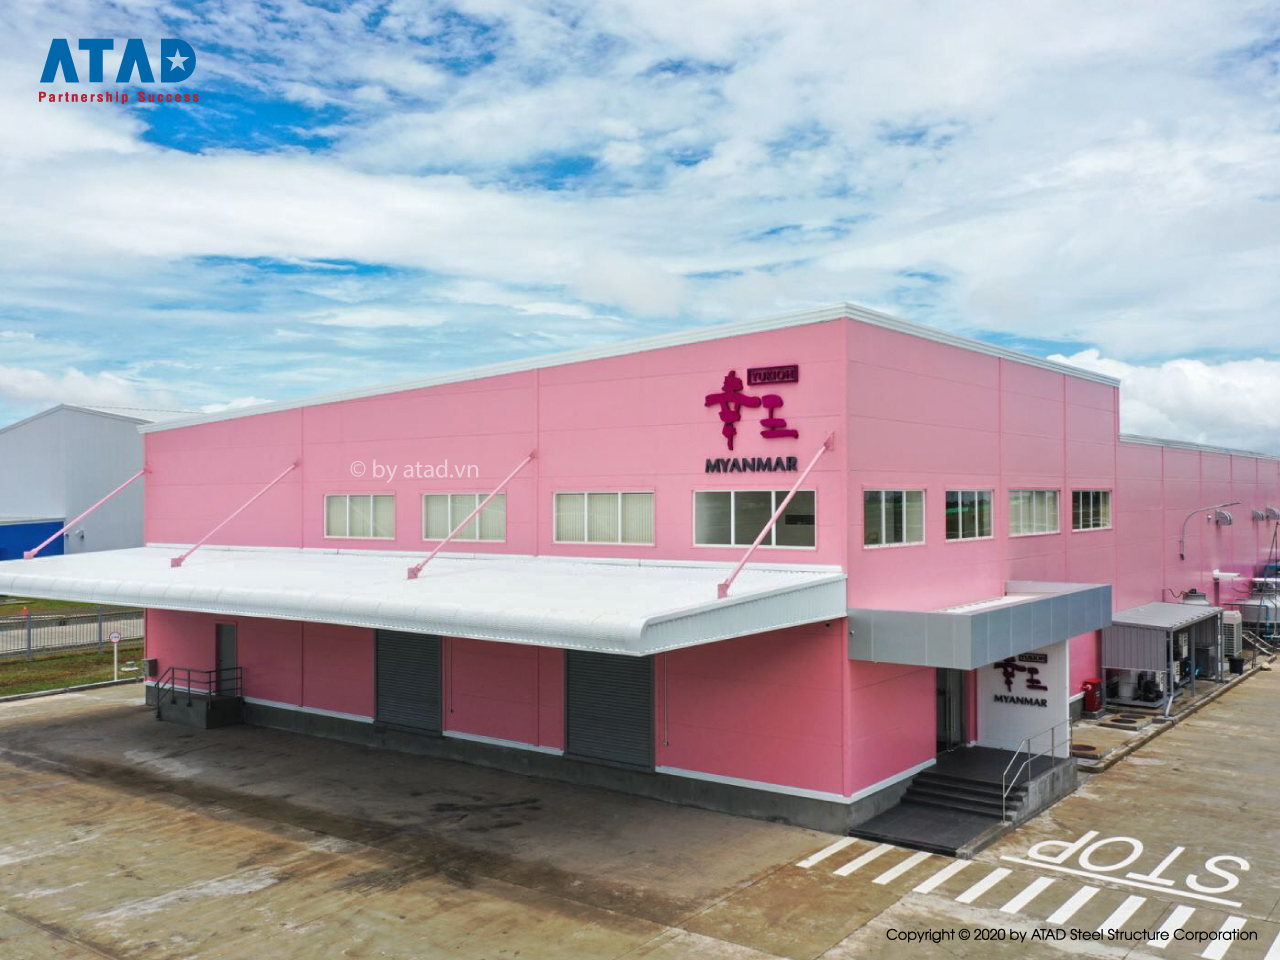 ATAD handed over Yukioh factory project, Myanmar